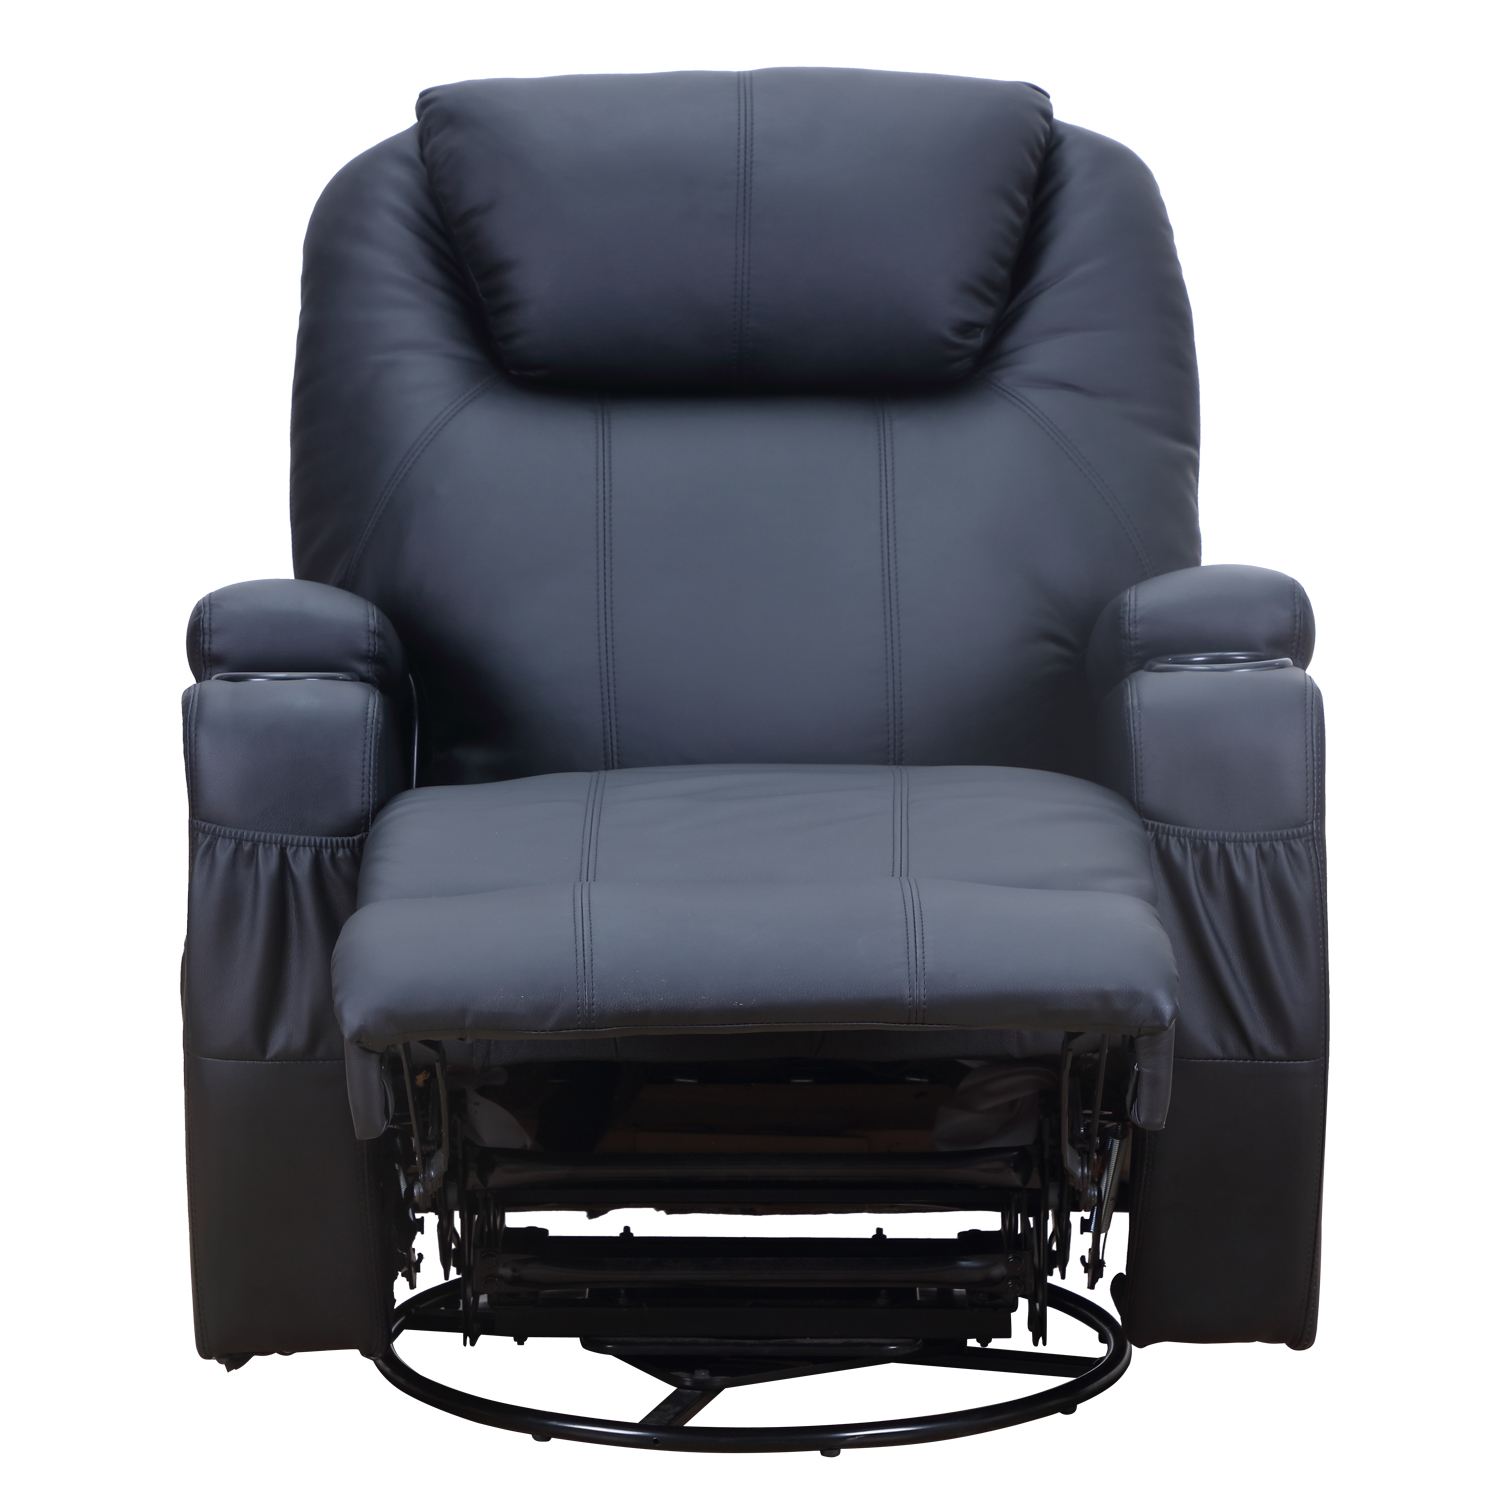 Therapeutic Heated Massage Reclining Sofa Chair Relaxing